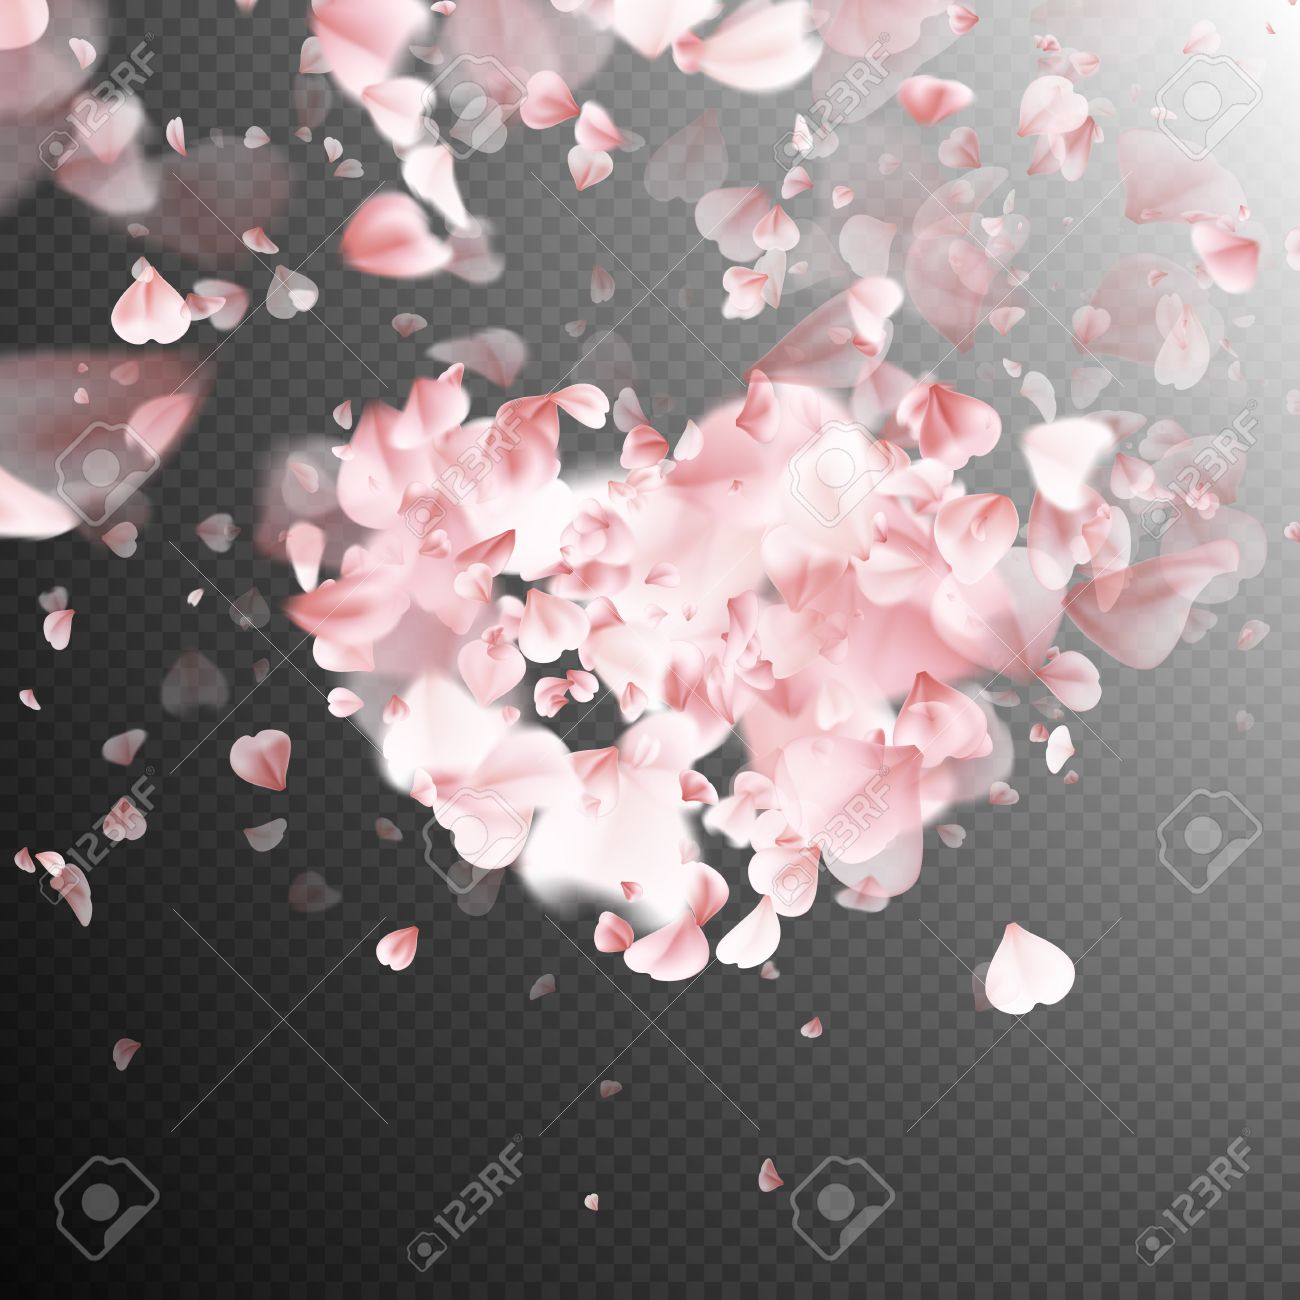 Pink petals falling on transparent background for Saint Valentine Day greeting card design. Flower petal in shape of heart. EPS 10 vector file included - 68245442